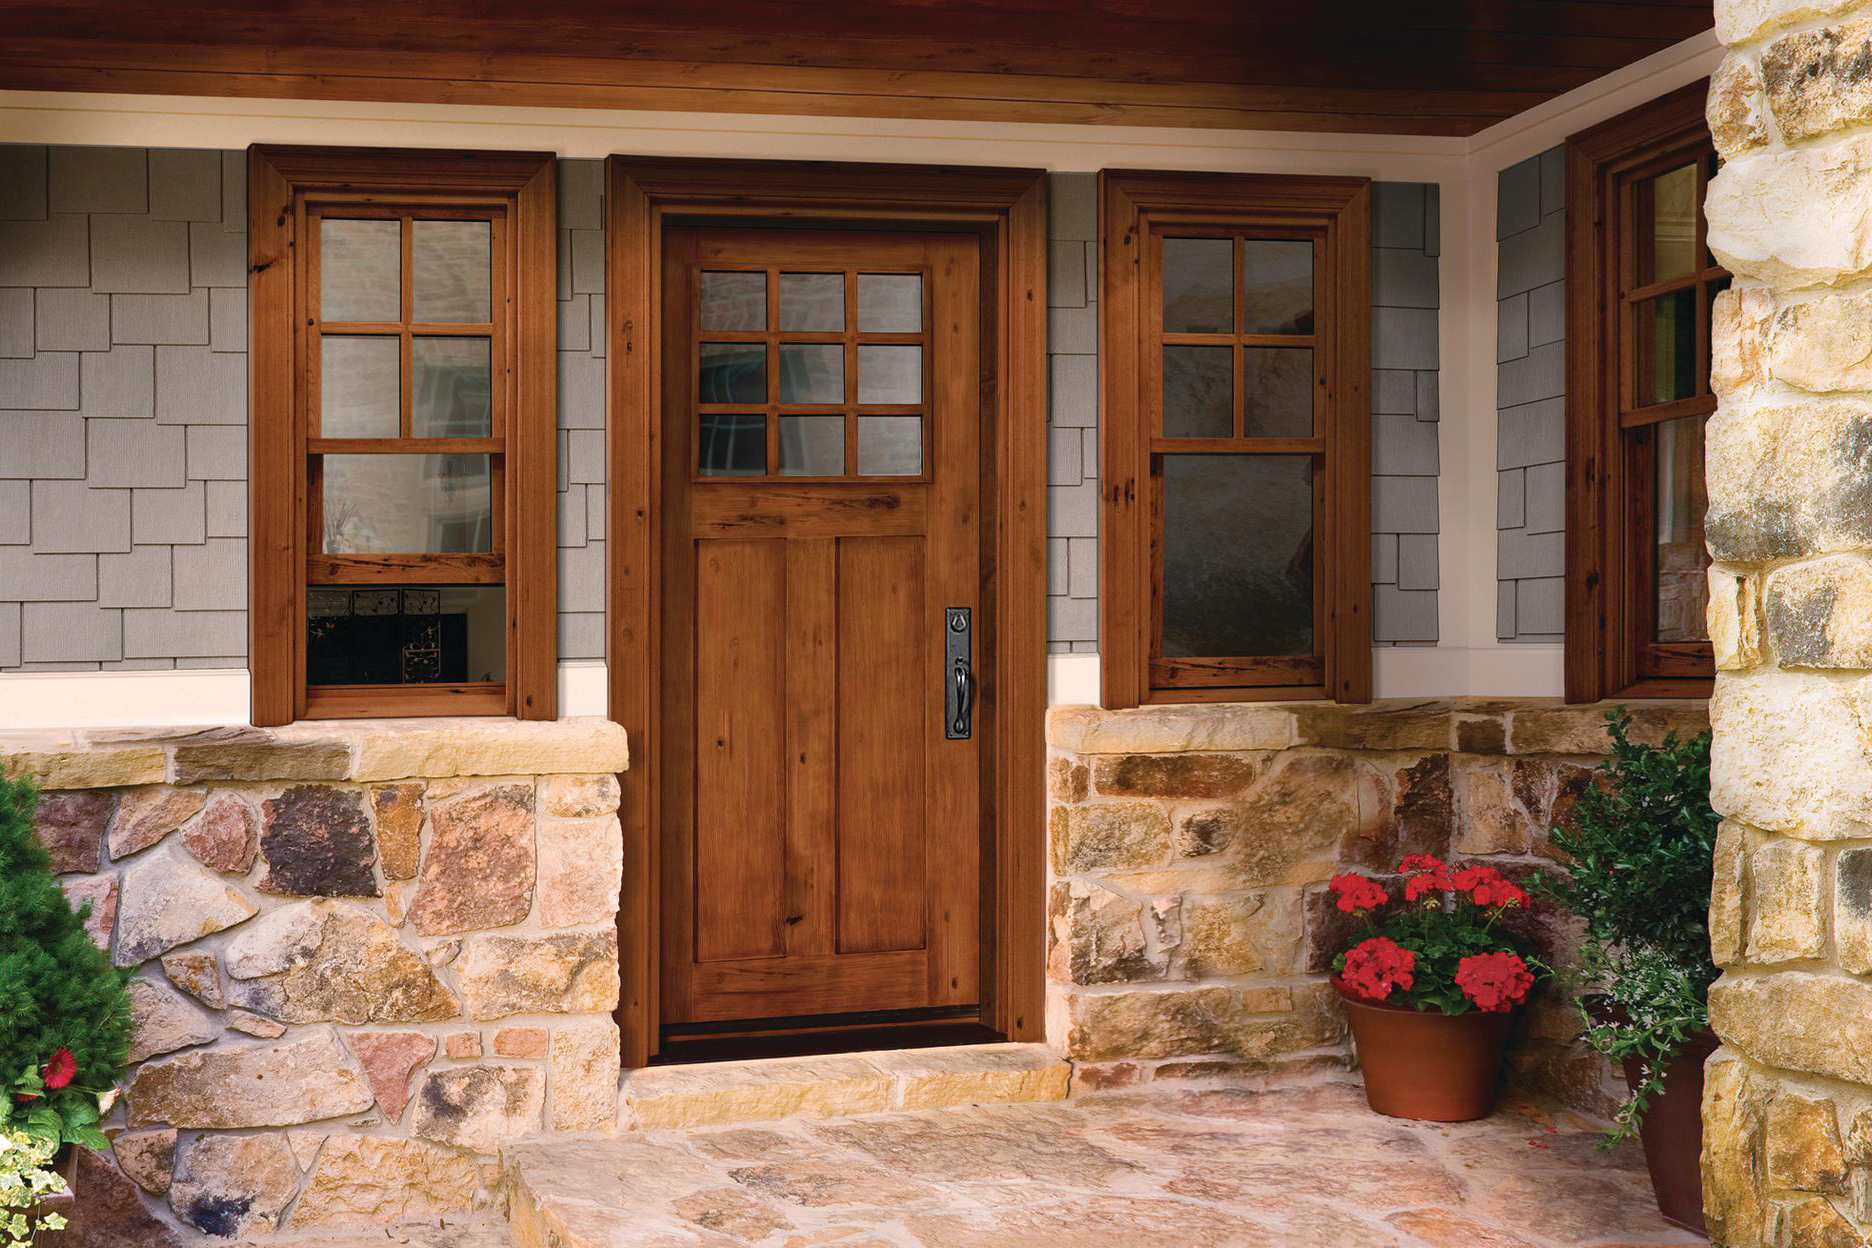 1248 #A82329 Reclaimed Rustic: Jeld Wen Reclaimed Wood Windows And Doors  save image Jen Weld Entry Doors 40171872